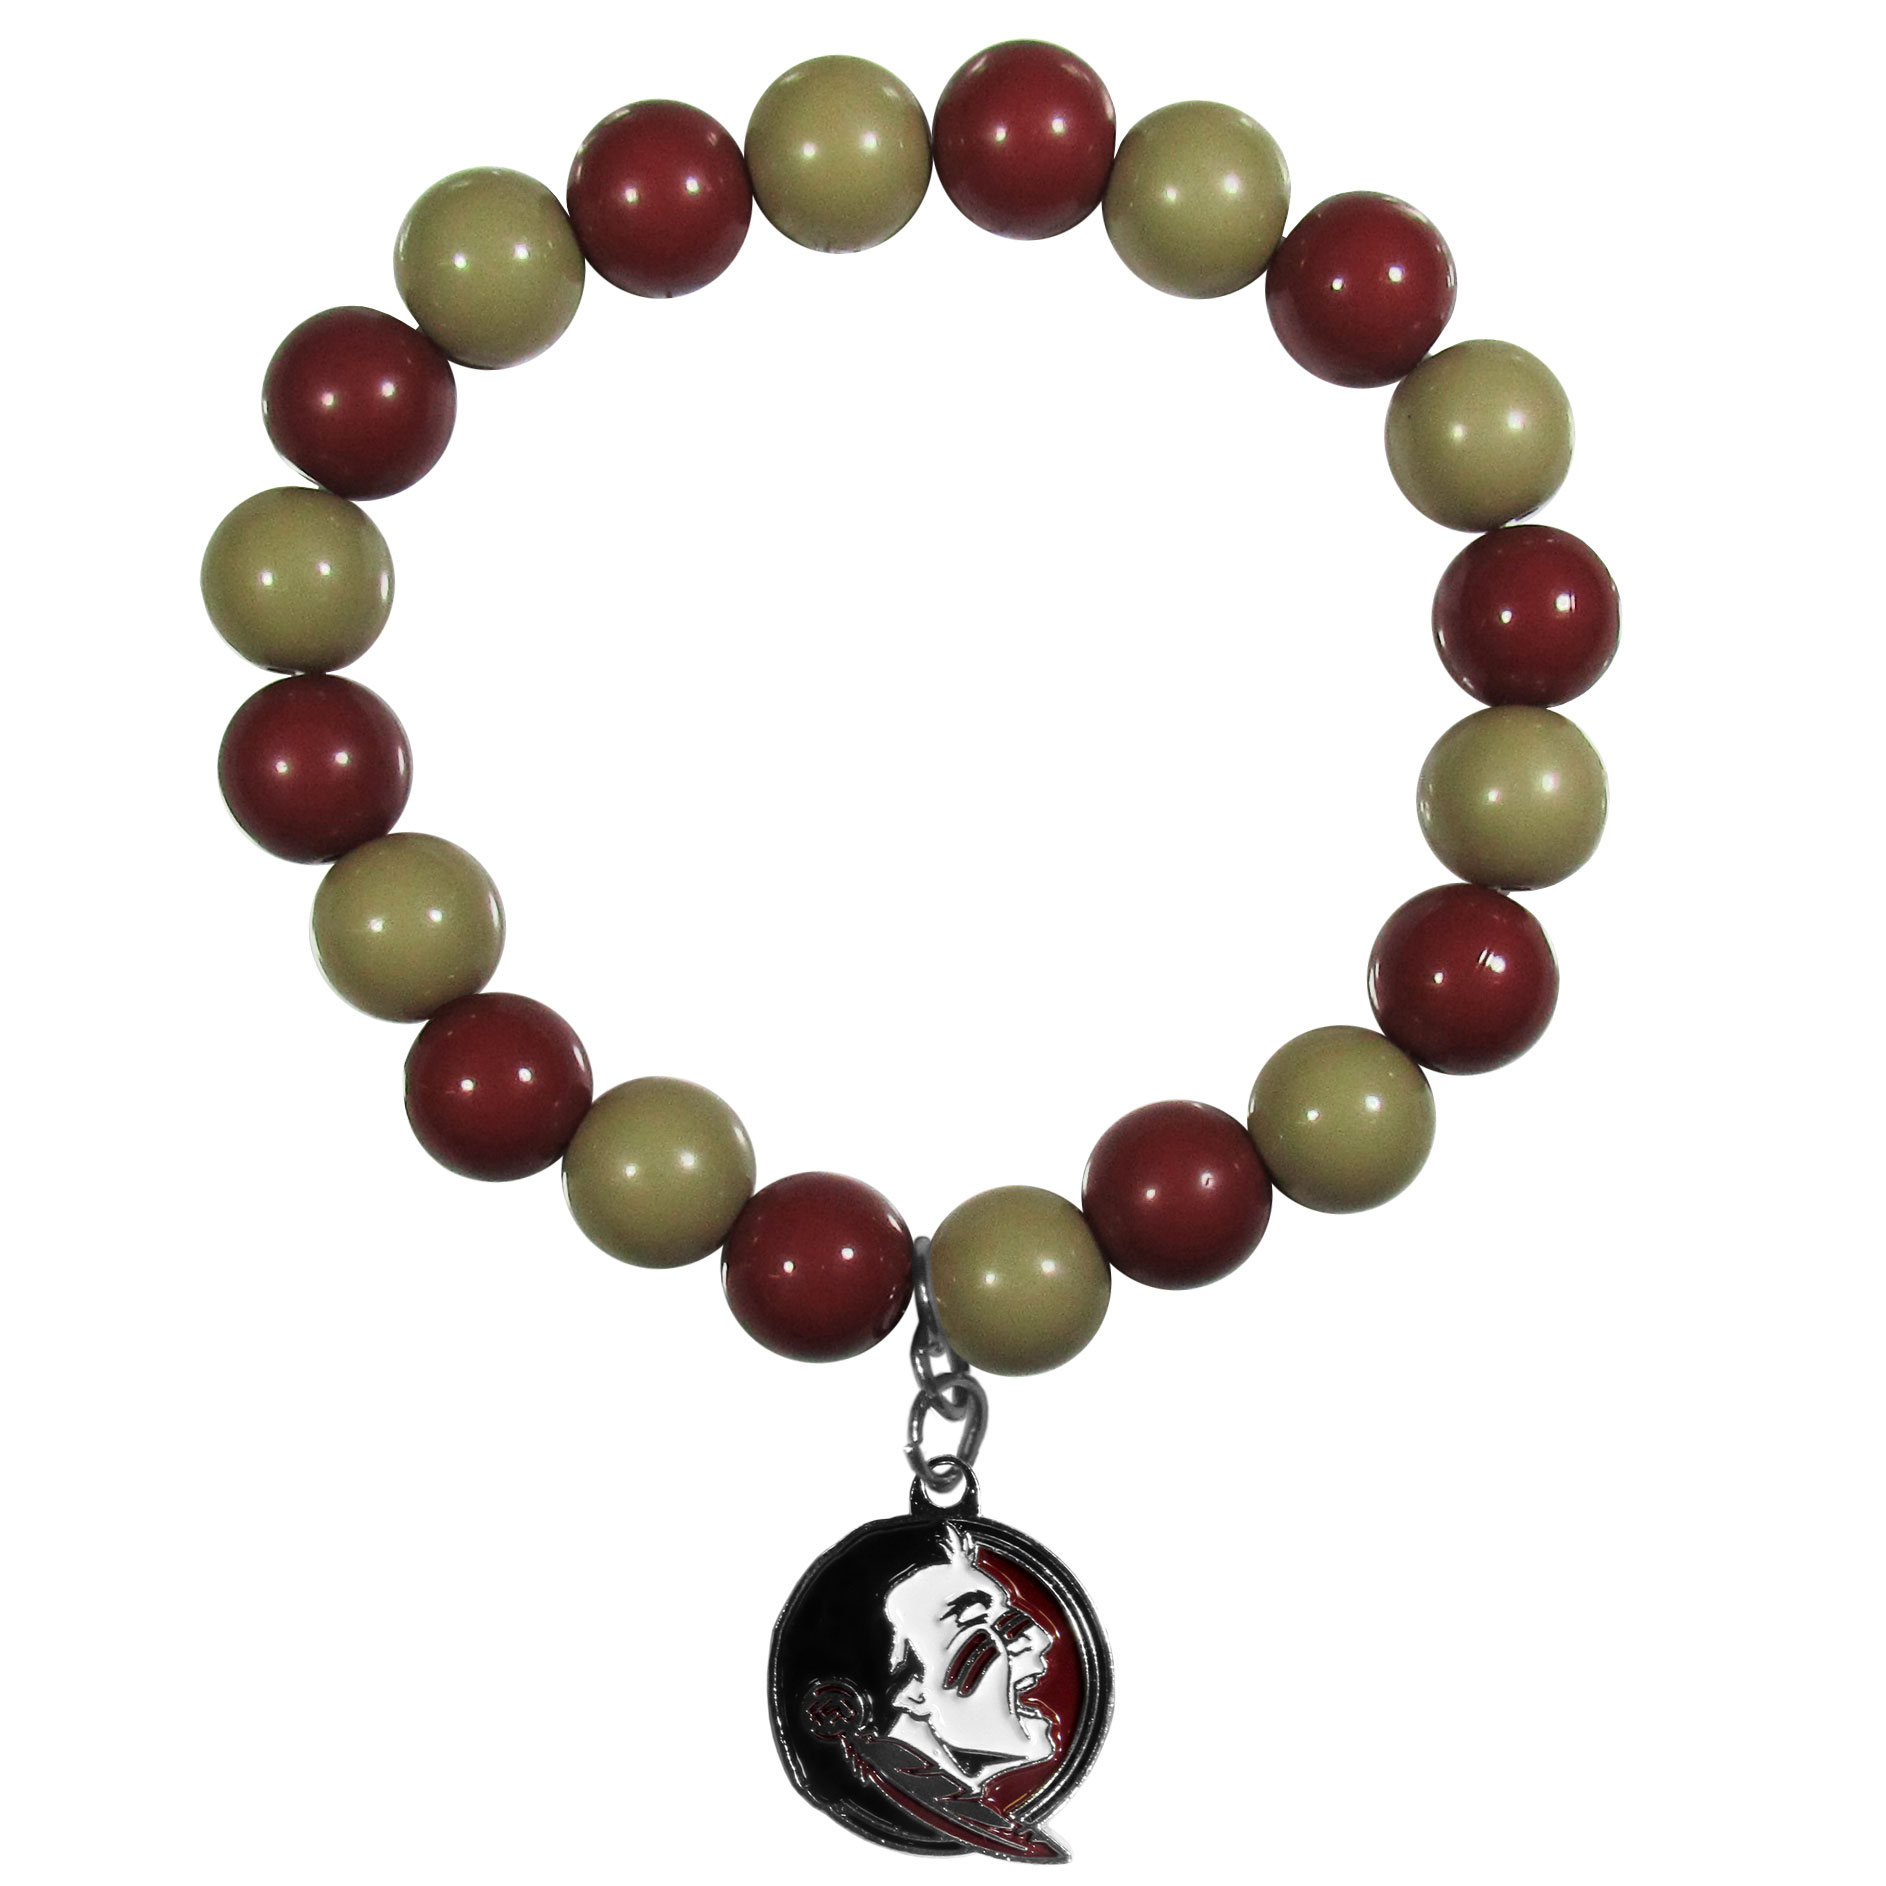 Florida St. Seminoles Fan Bead Bracelet - Flash your Florida St. Seminoles spirit with this bright stretch bracelet. This new bracelet features multicolored team beads on stretch cord with a nickel-free enameled chrome team charm. This bracelet adds the perfect pop of color to your game day accessories.